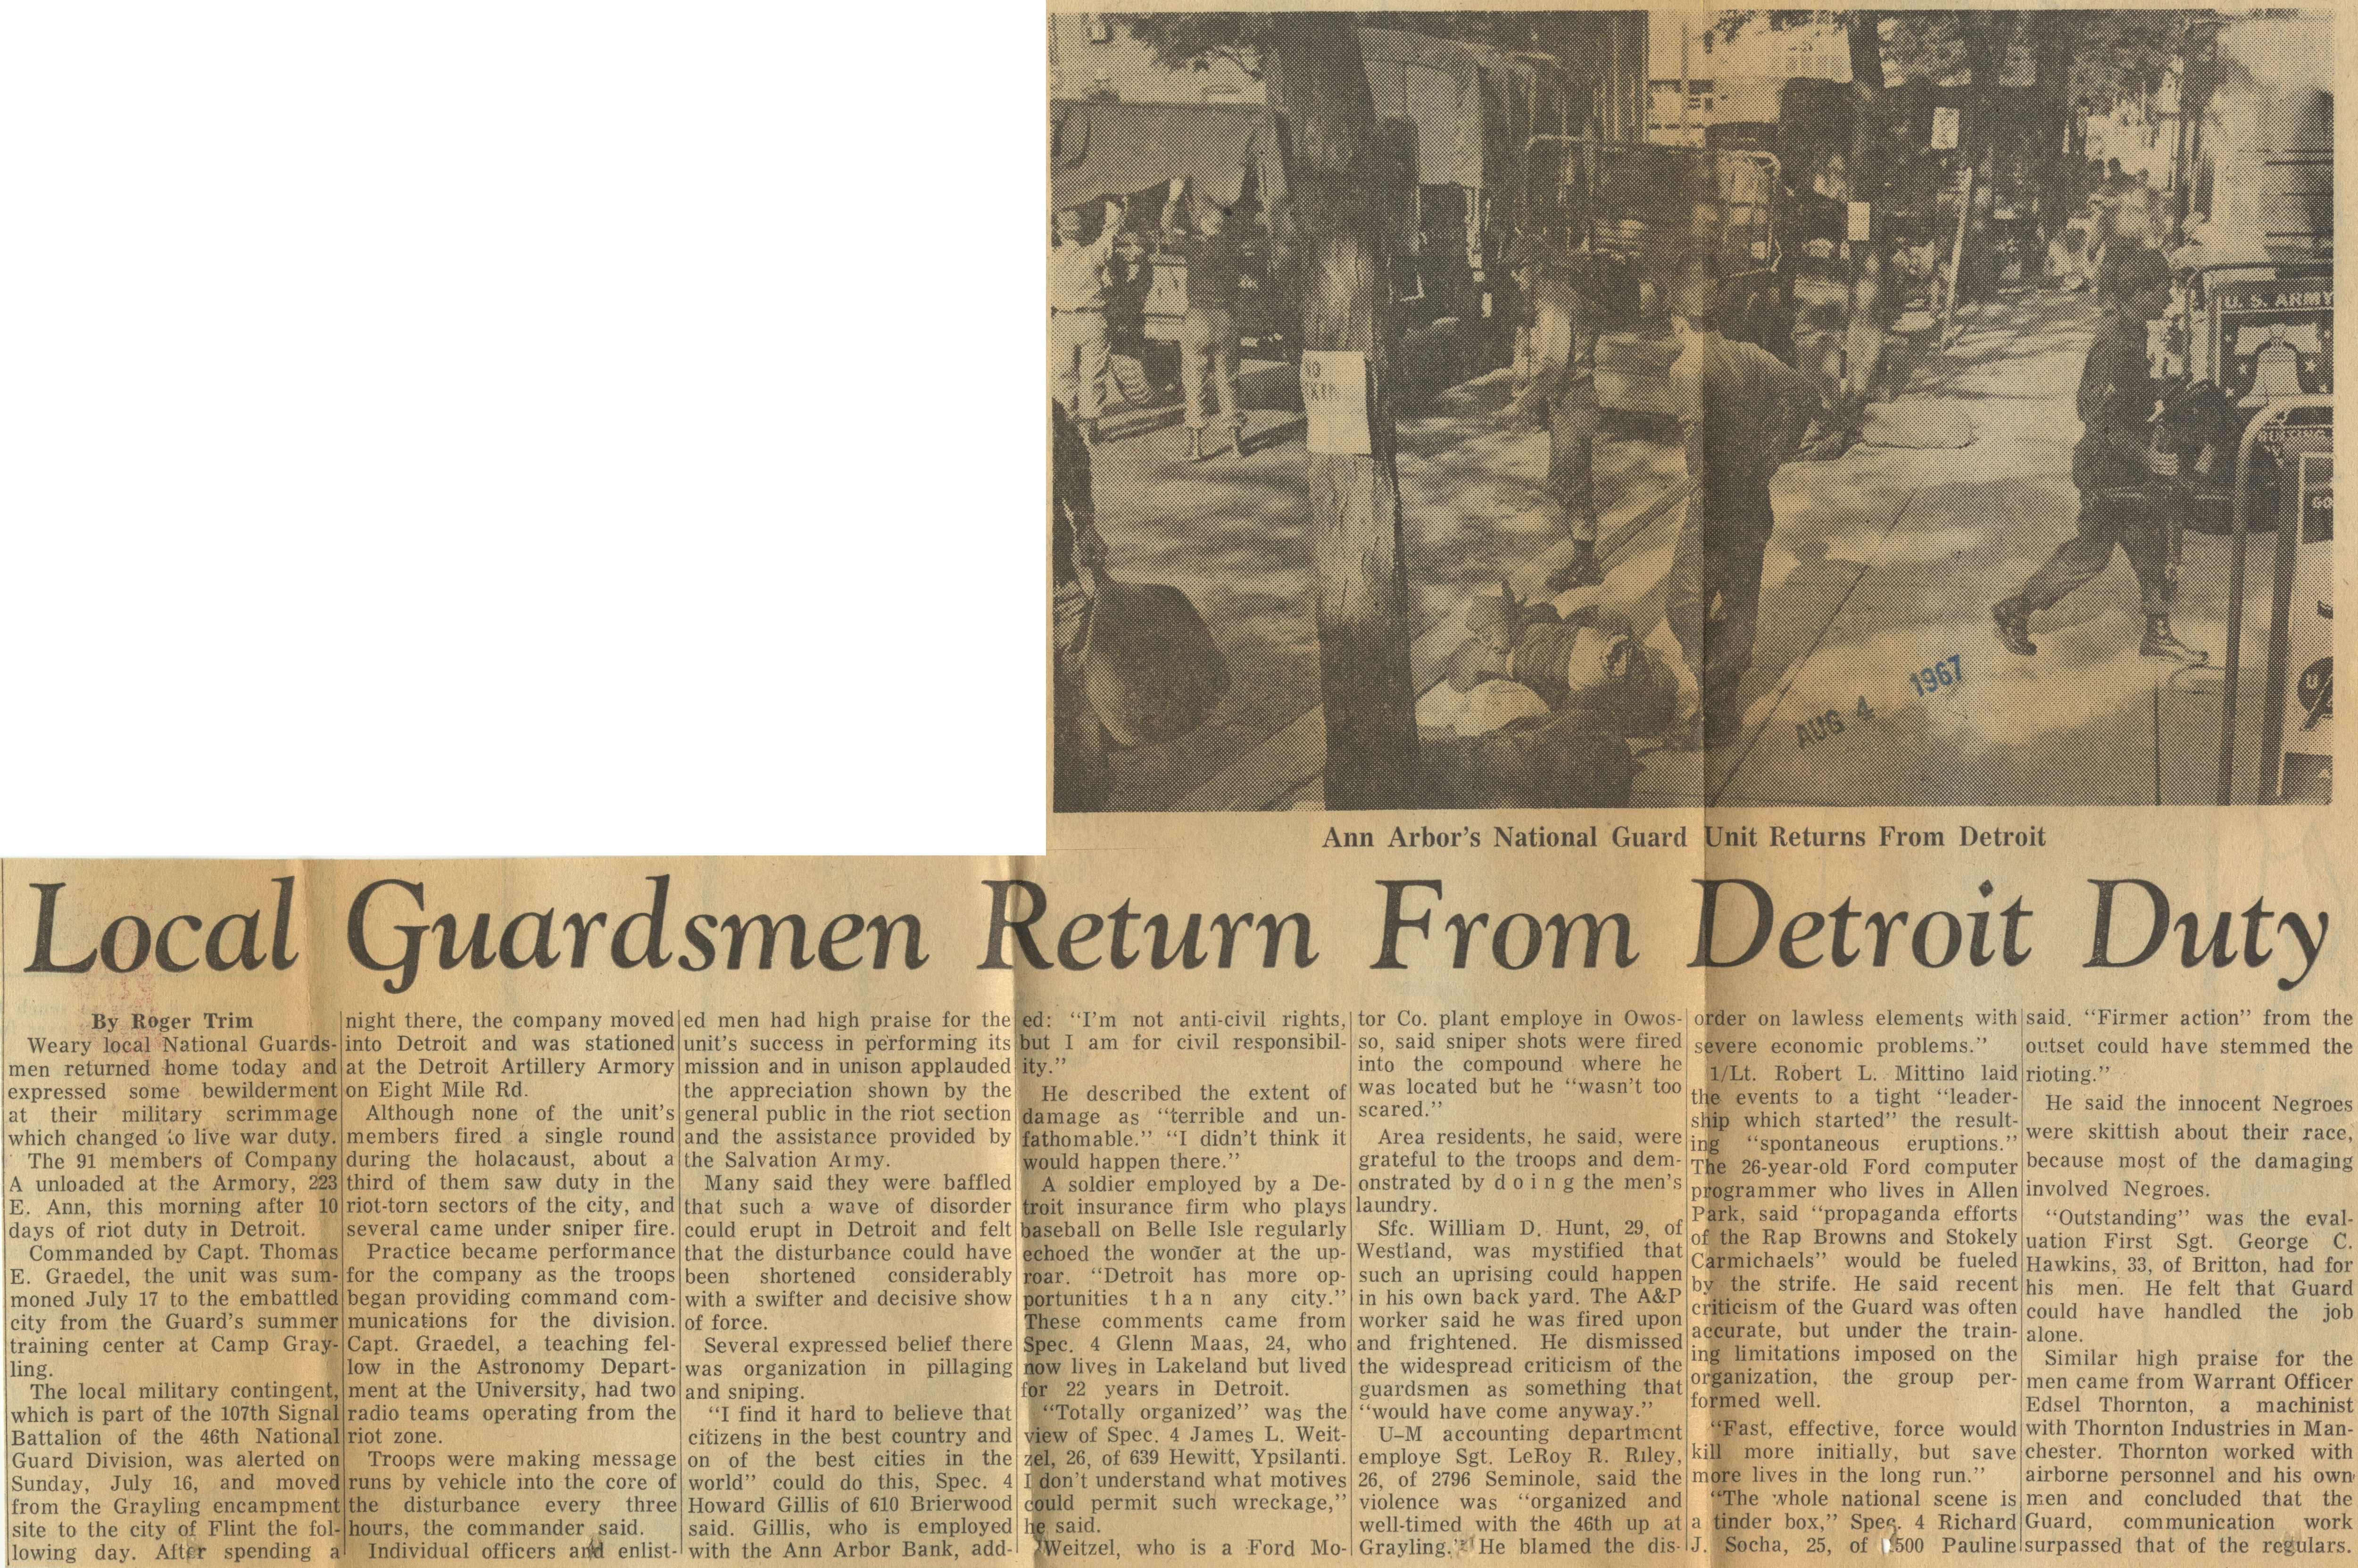 Local Guardsmen Return From Detroit Duty image